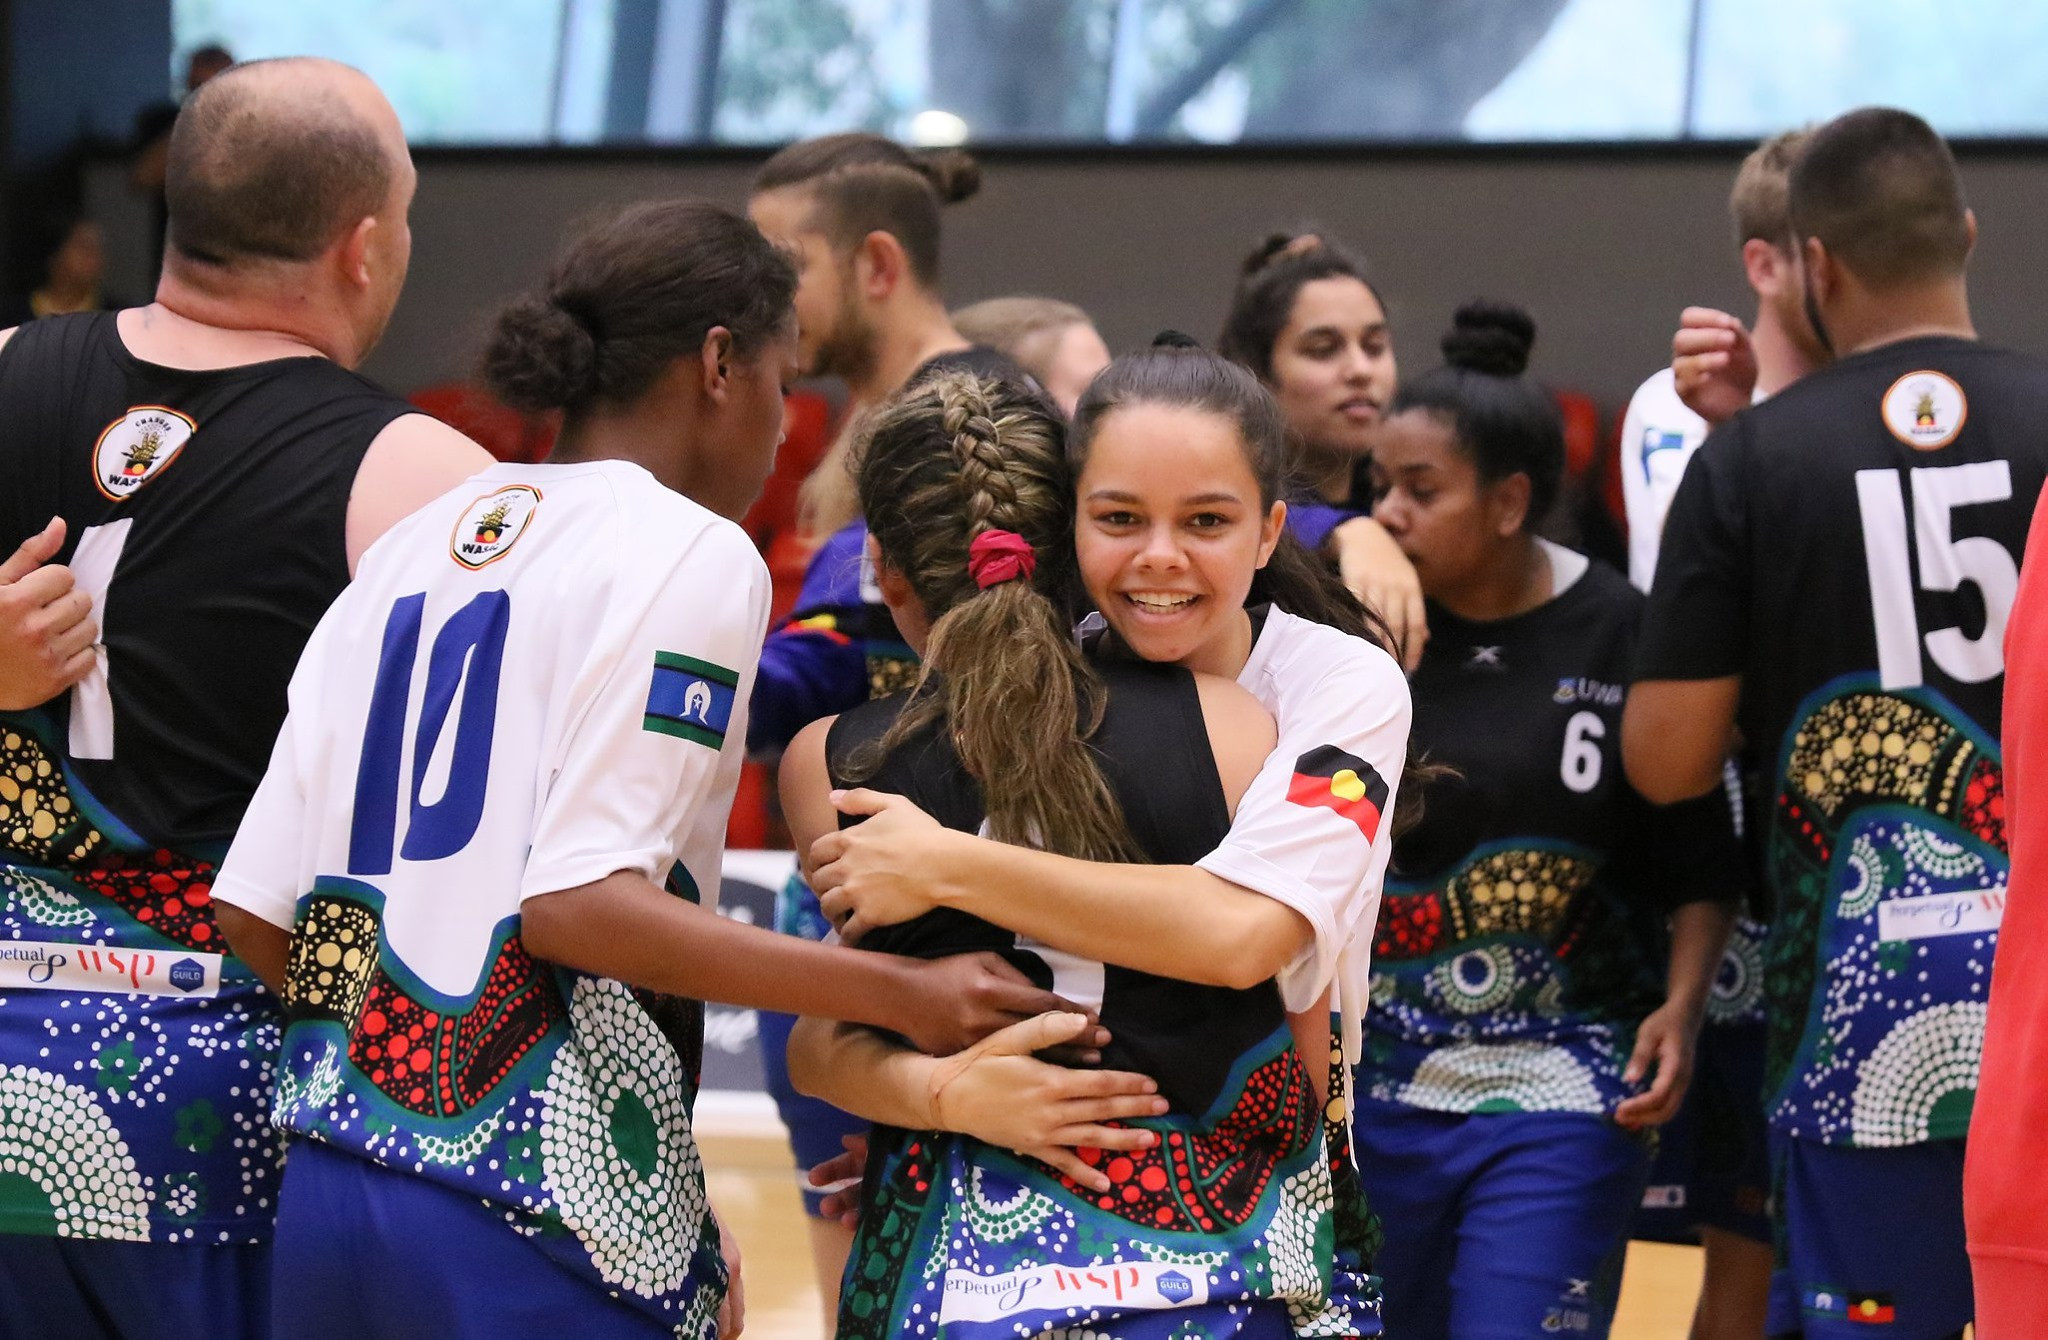 UniSport Australia announces new dates for Indigenous Nationals